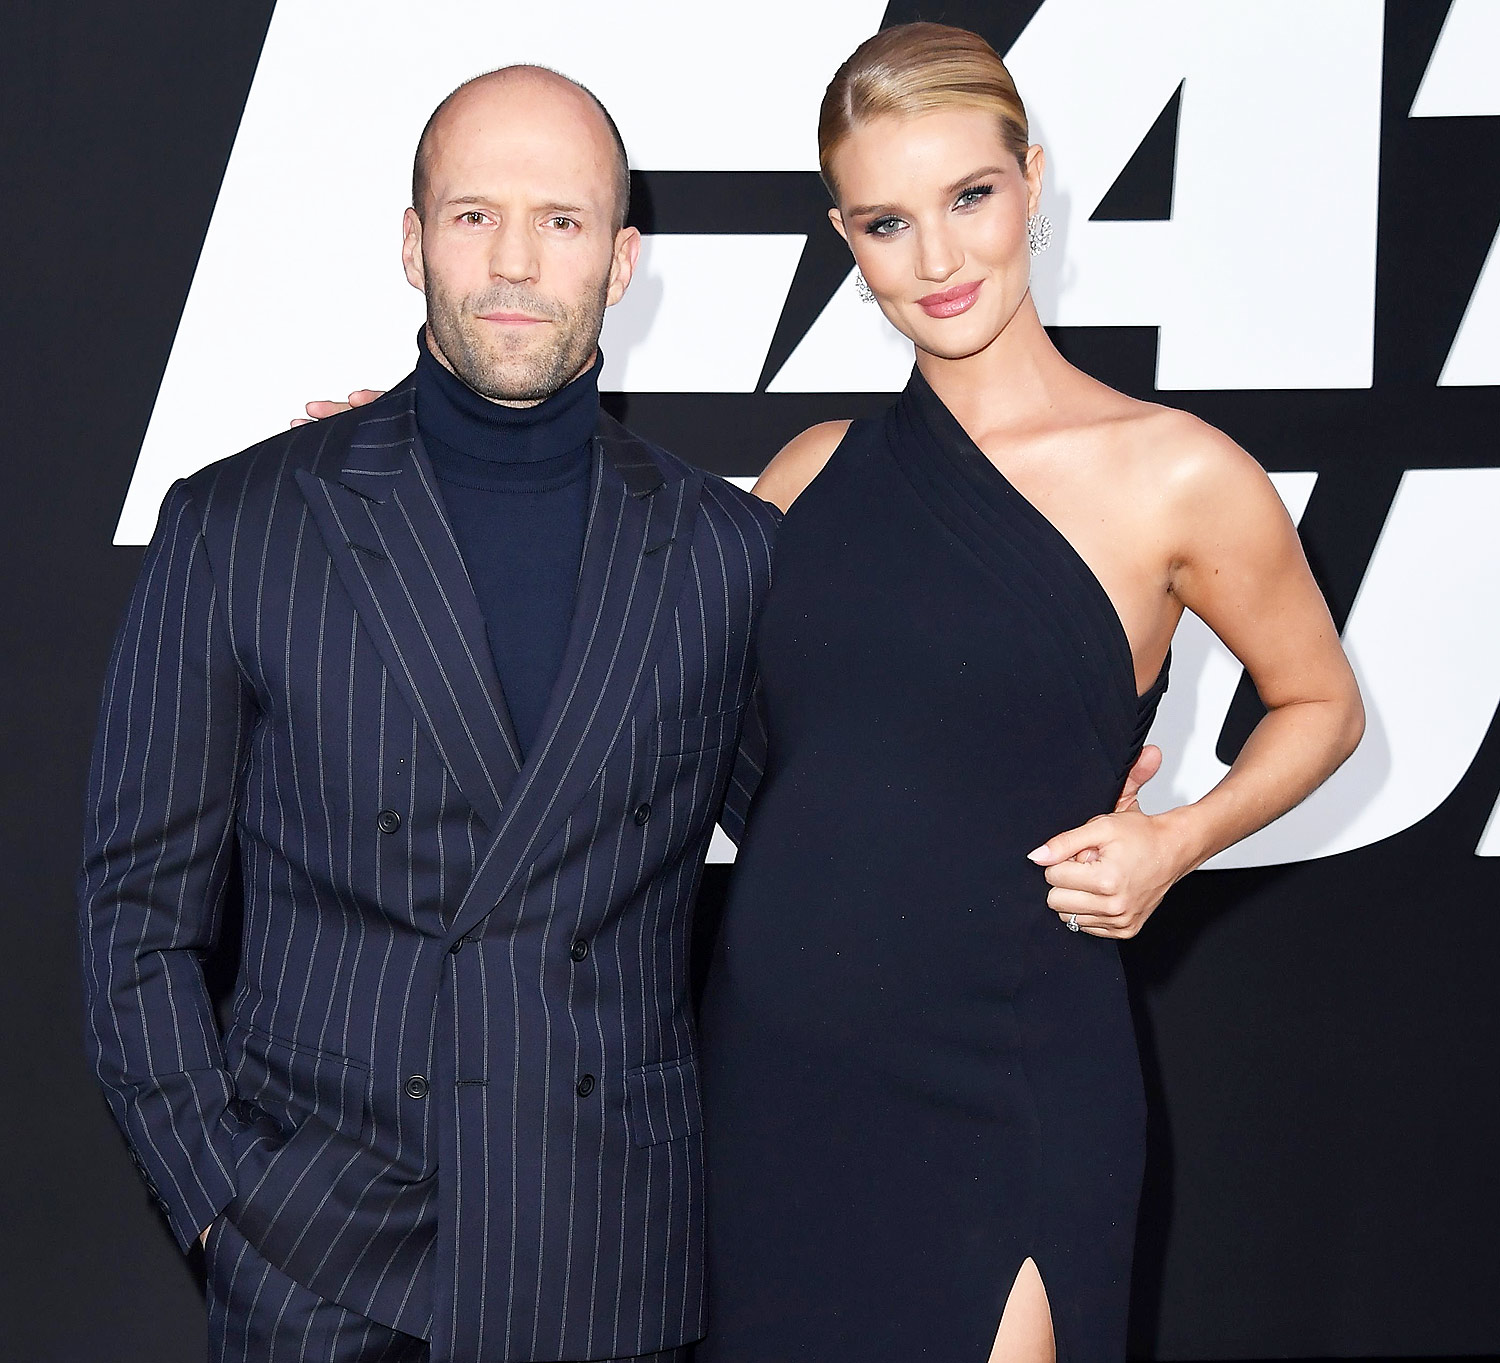 Jason Statham Movies, Bio, Age, Wife and many more